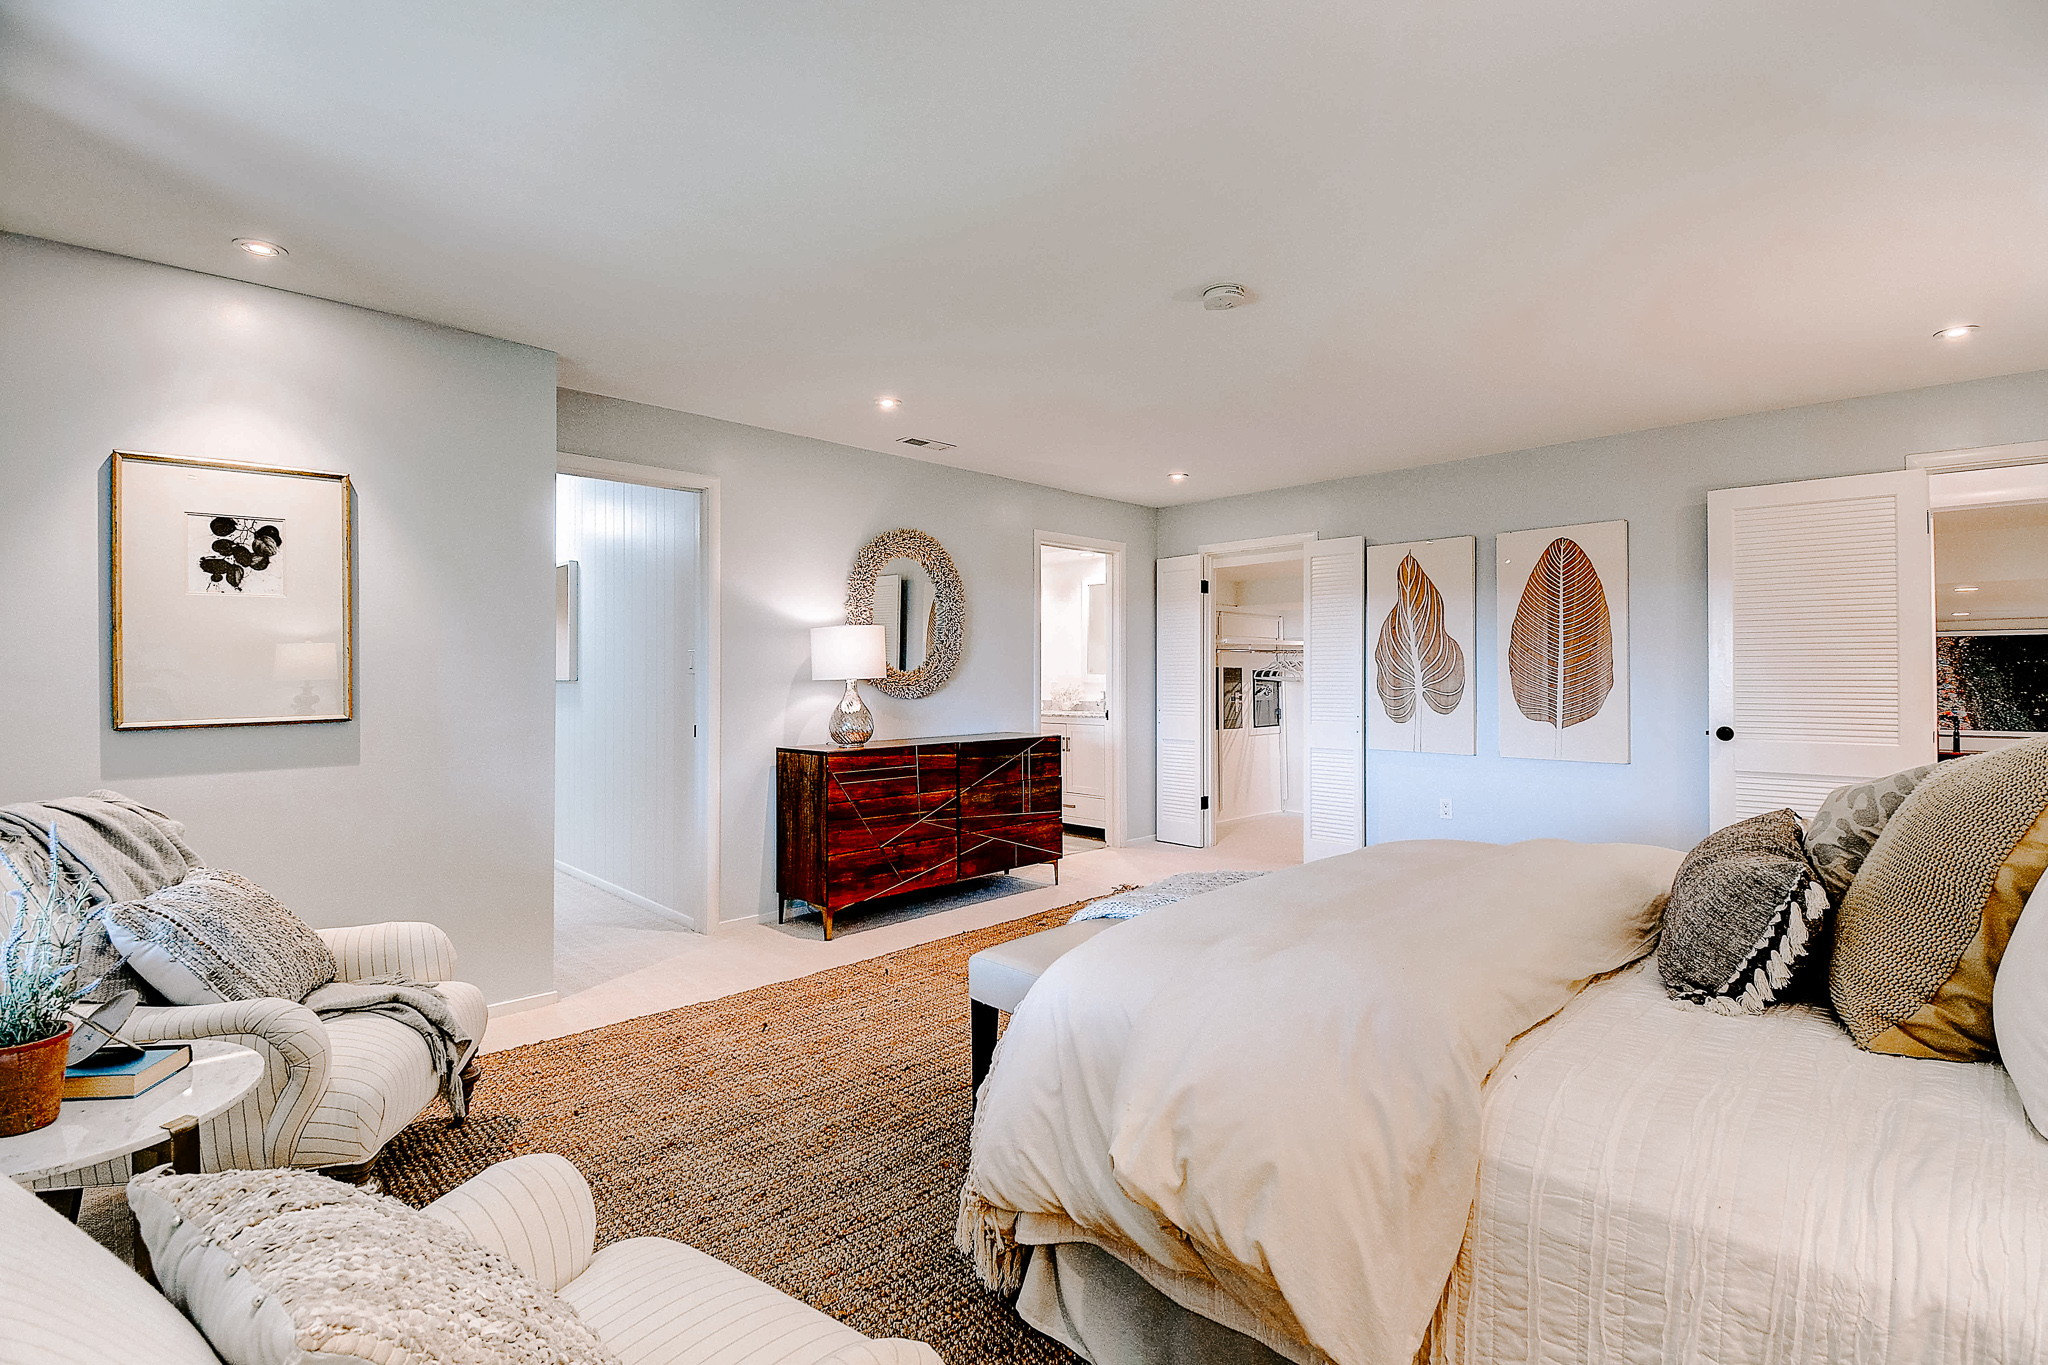 210 Bretano Way-38Greenbrae Real Estate - Listed by Team Own Marin County .jpg